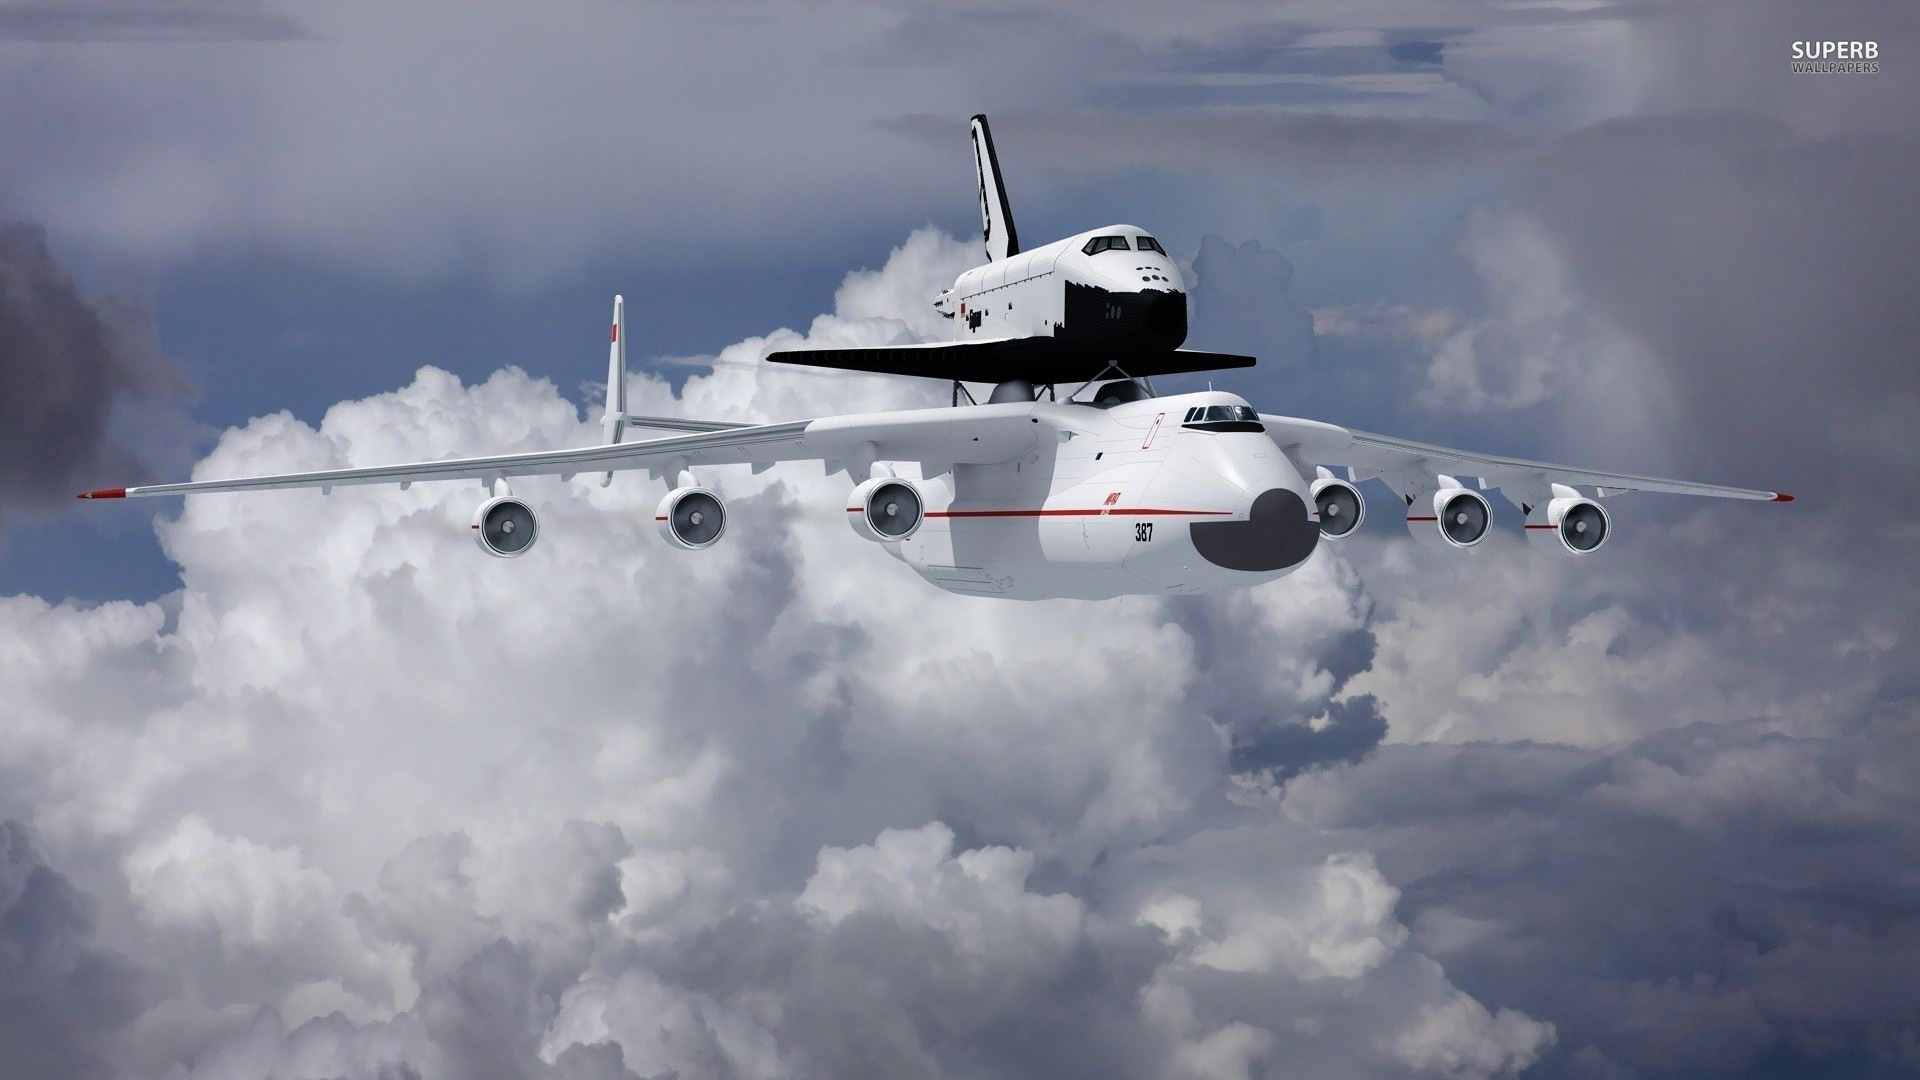 The largest passenger aircraft in the world 26